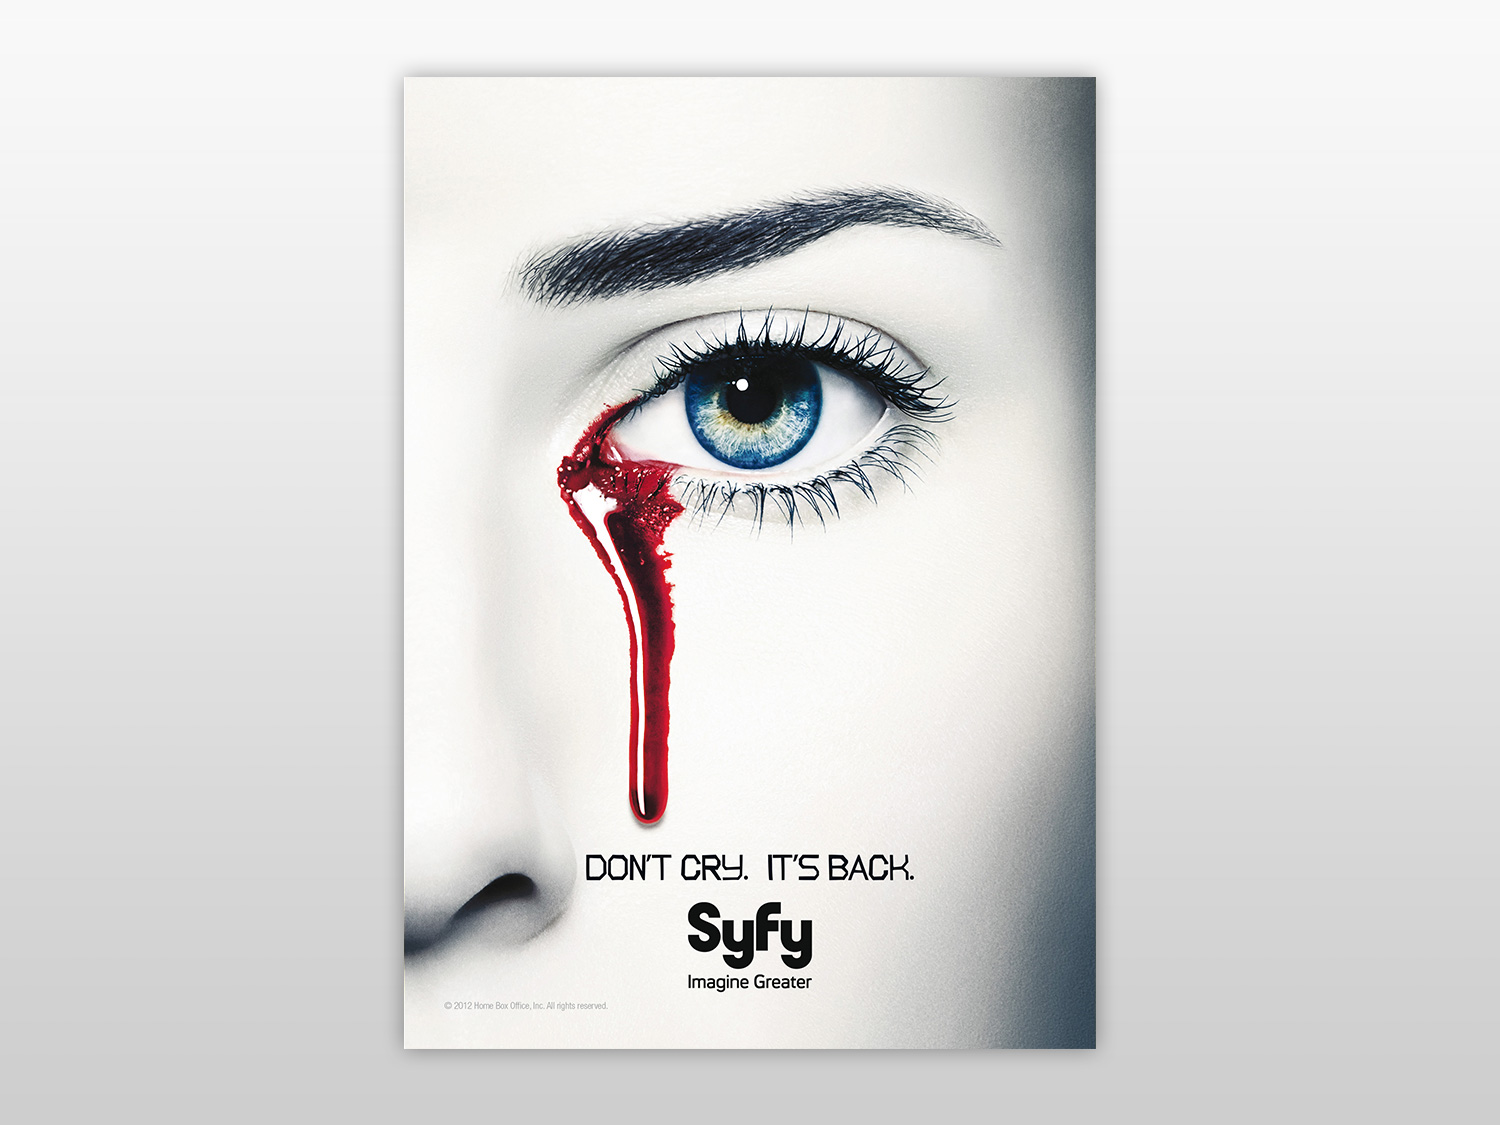 Full-Page Ad for Season 6